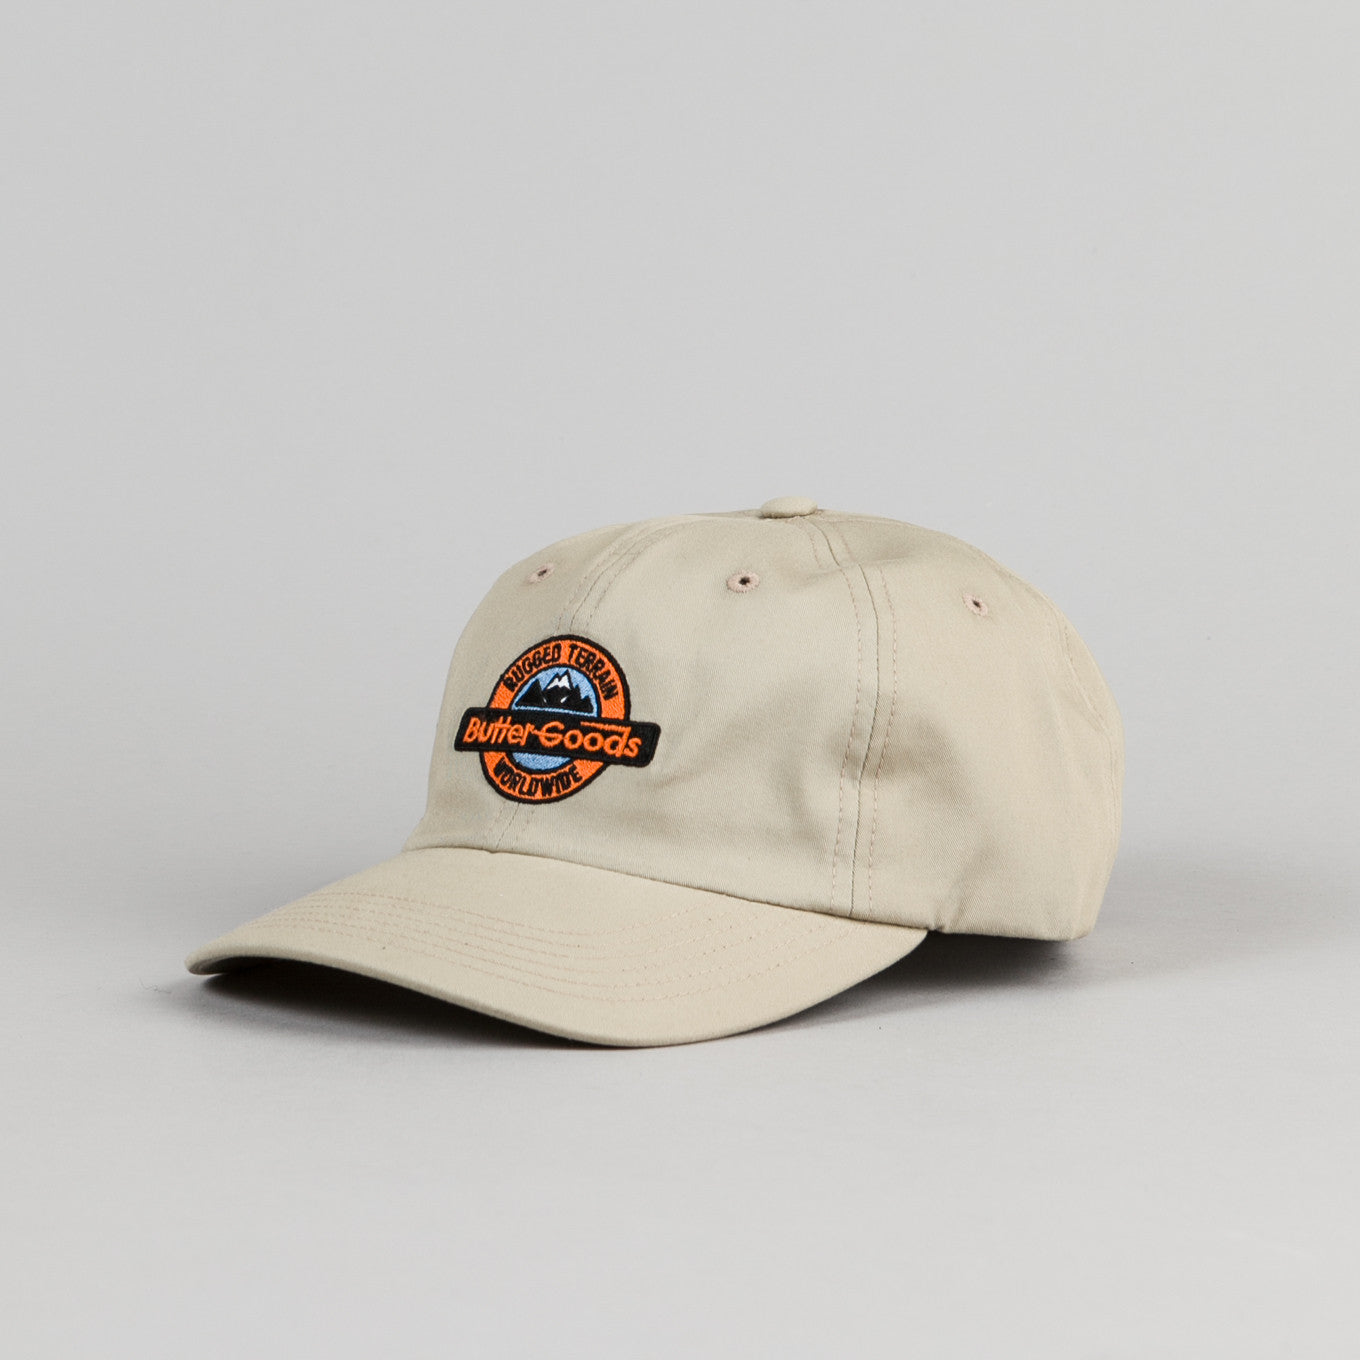 Butter Goods Rugged Terrain Cap - Khaki